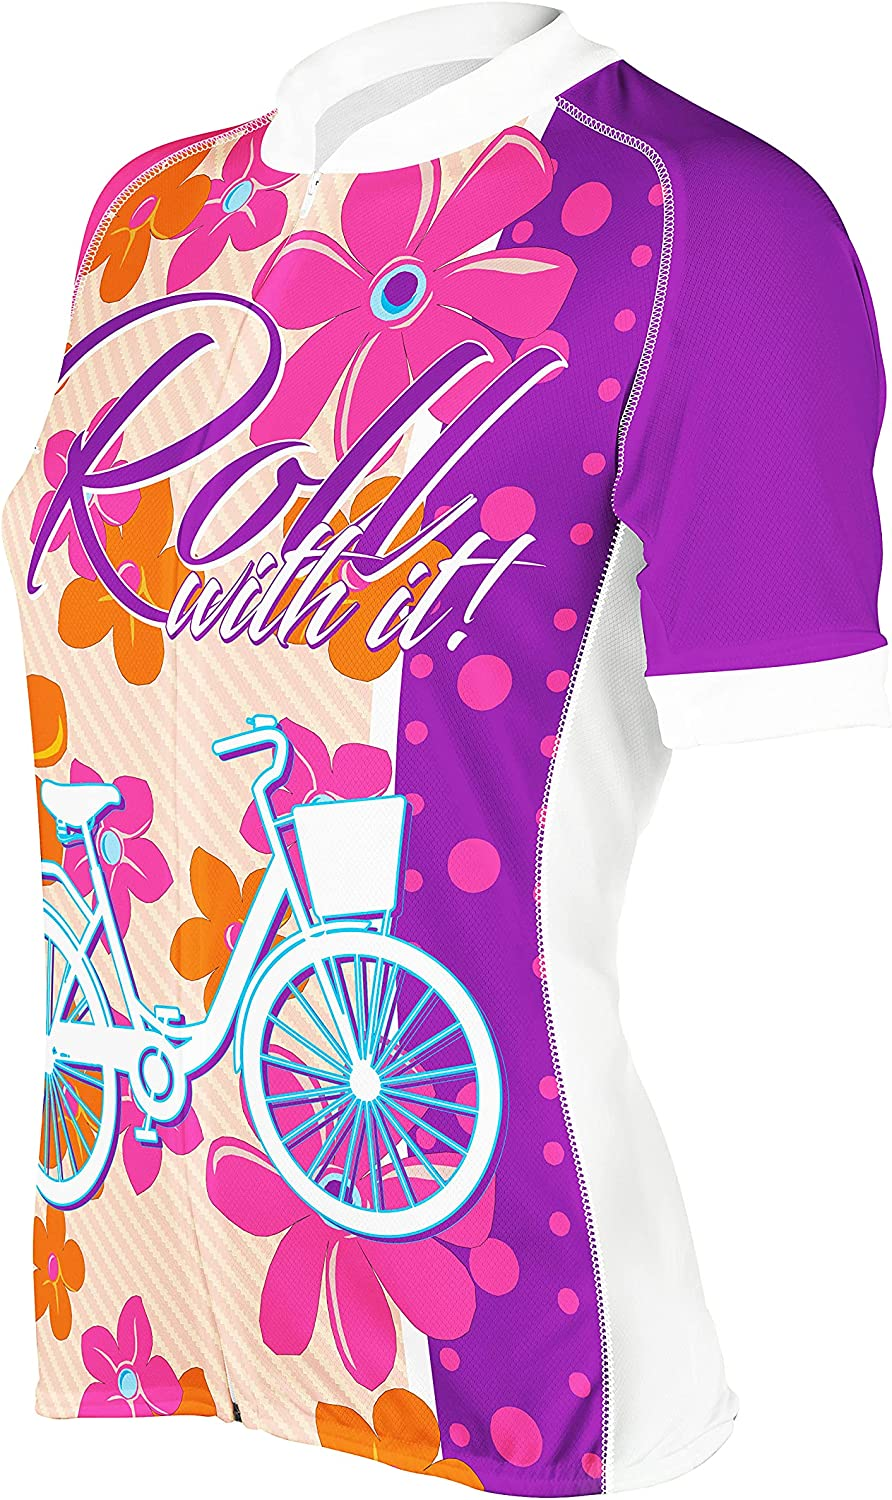 PEAK 1 SPORTS High material Women's Roll with Max 70% OFF Cycling Bike Jer Short Sleeve It